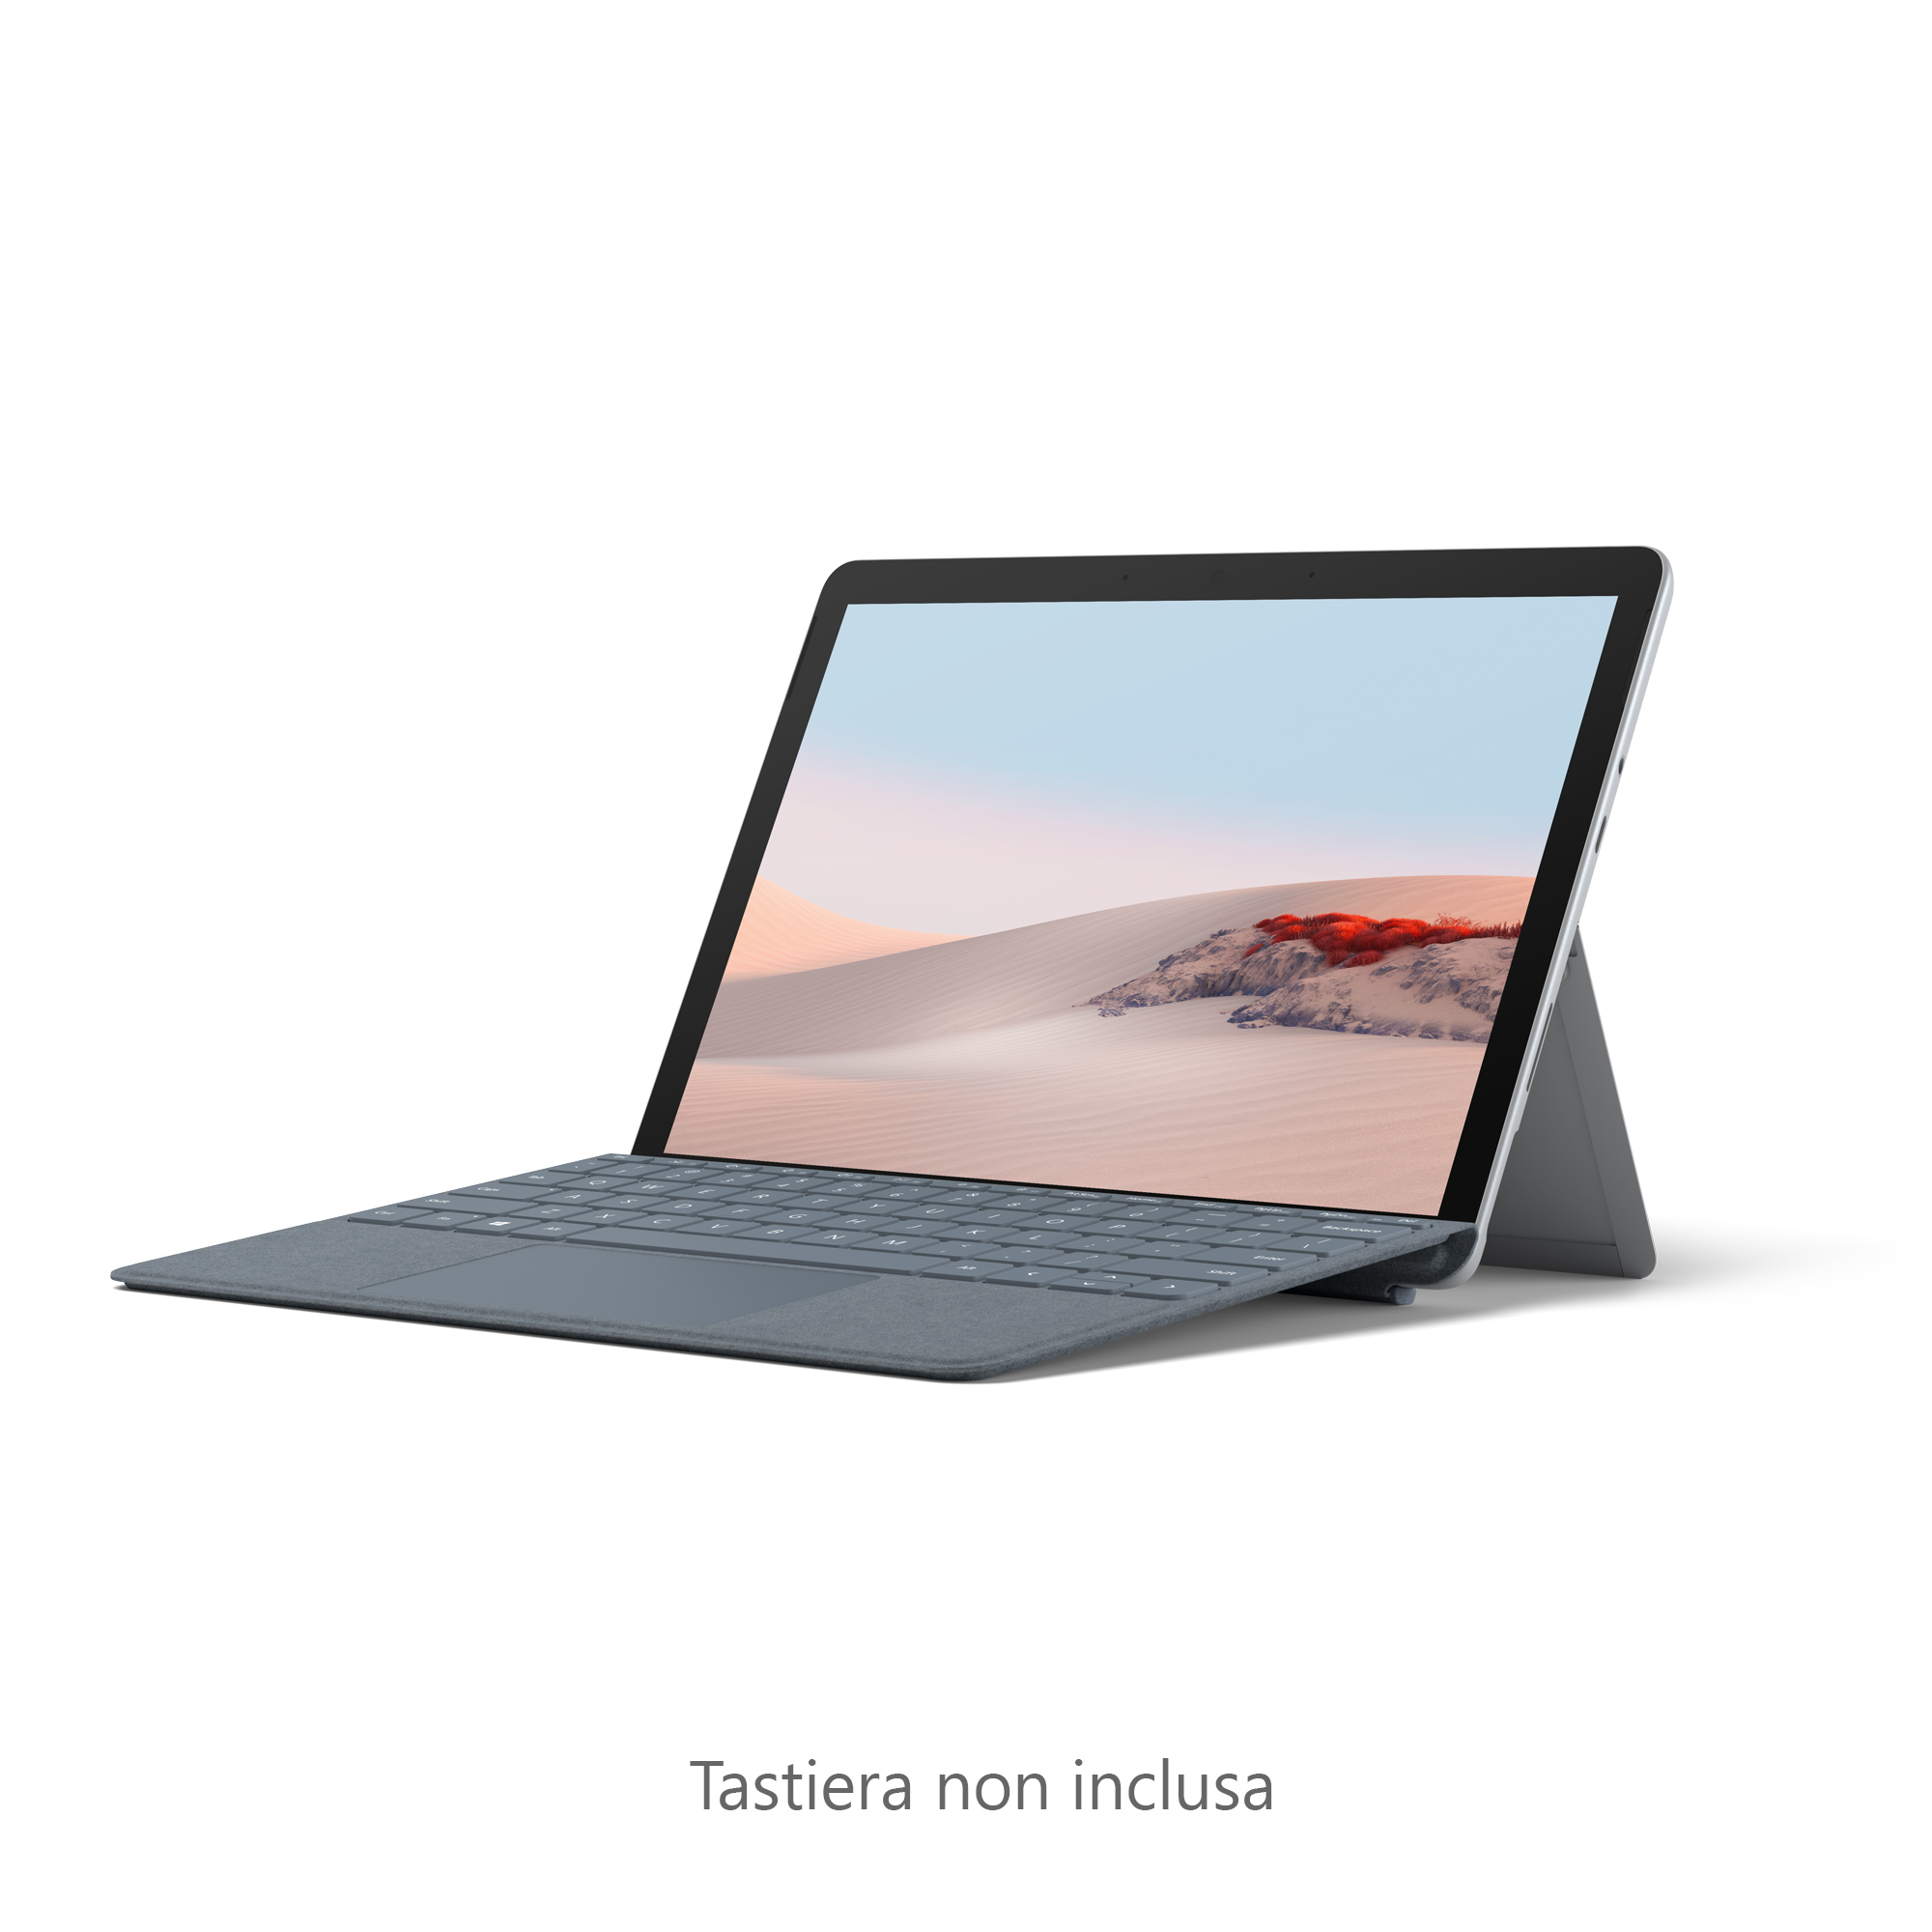 Preview: Microsoft Surface Go 2 - Tablet - Core m3 8100Y / 1.1 GHz - Win 10 Home in S mode - 8 GB RAM - 128 GB SSD - 26.7 cm (10.